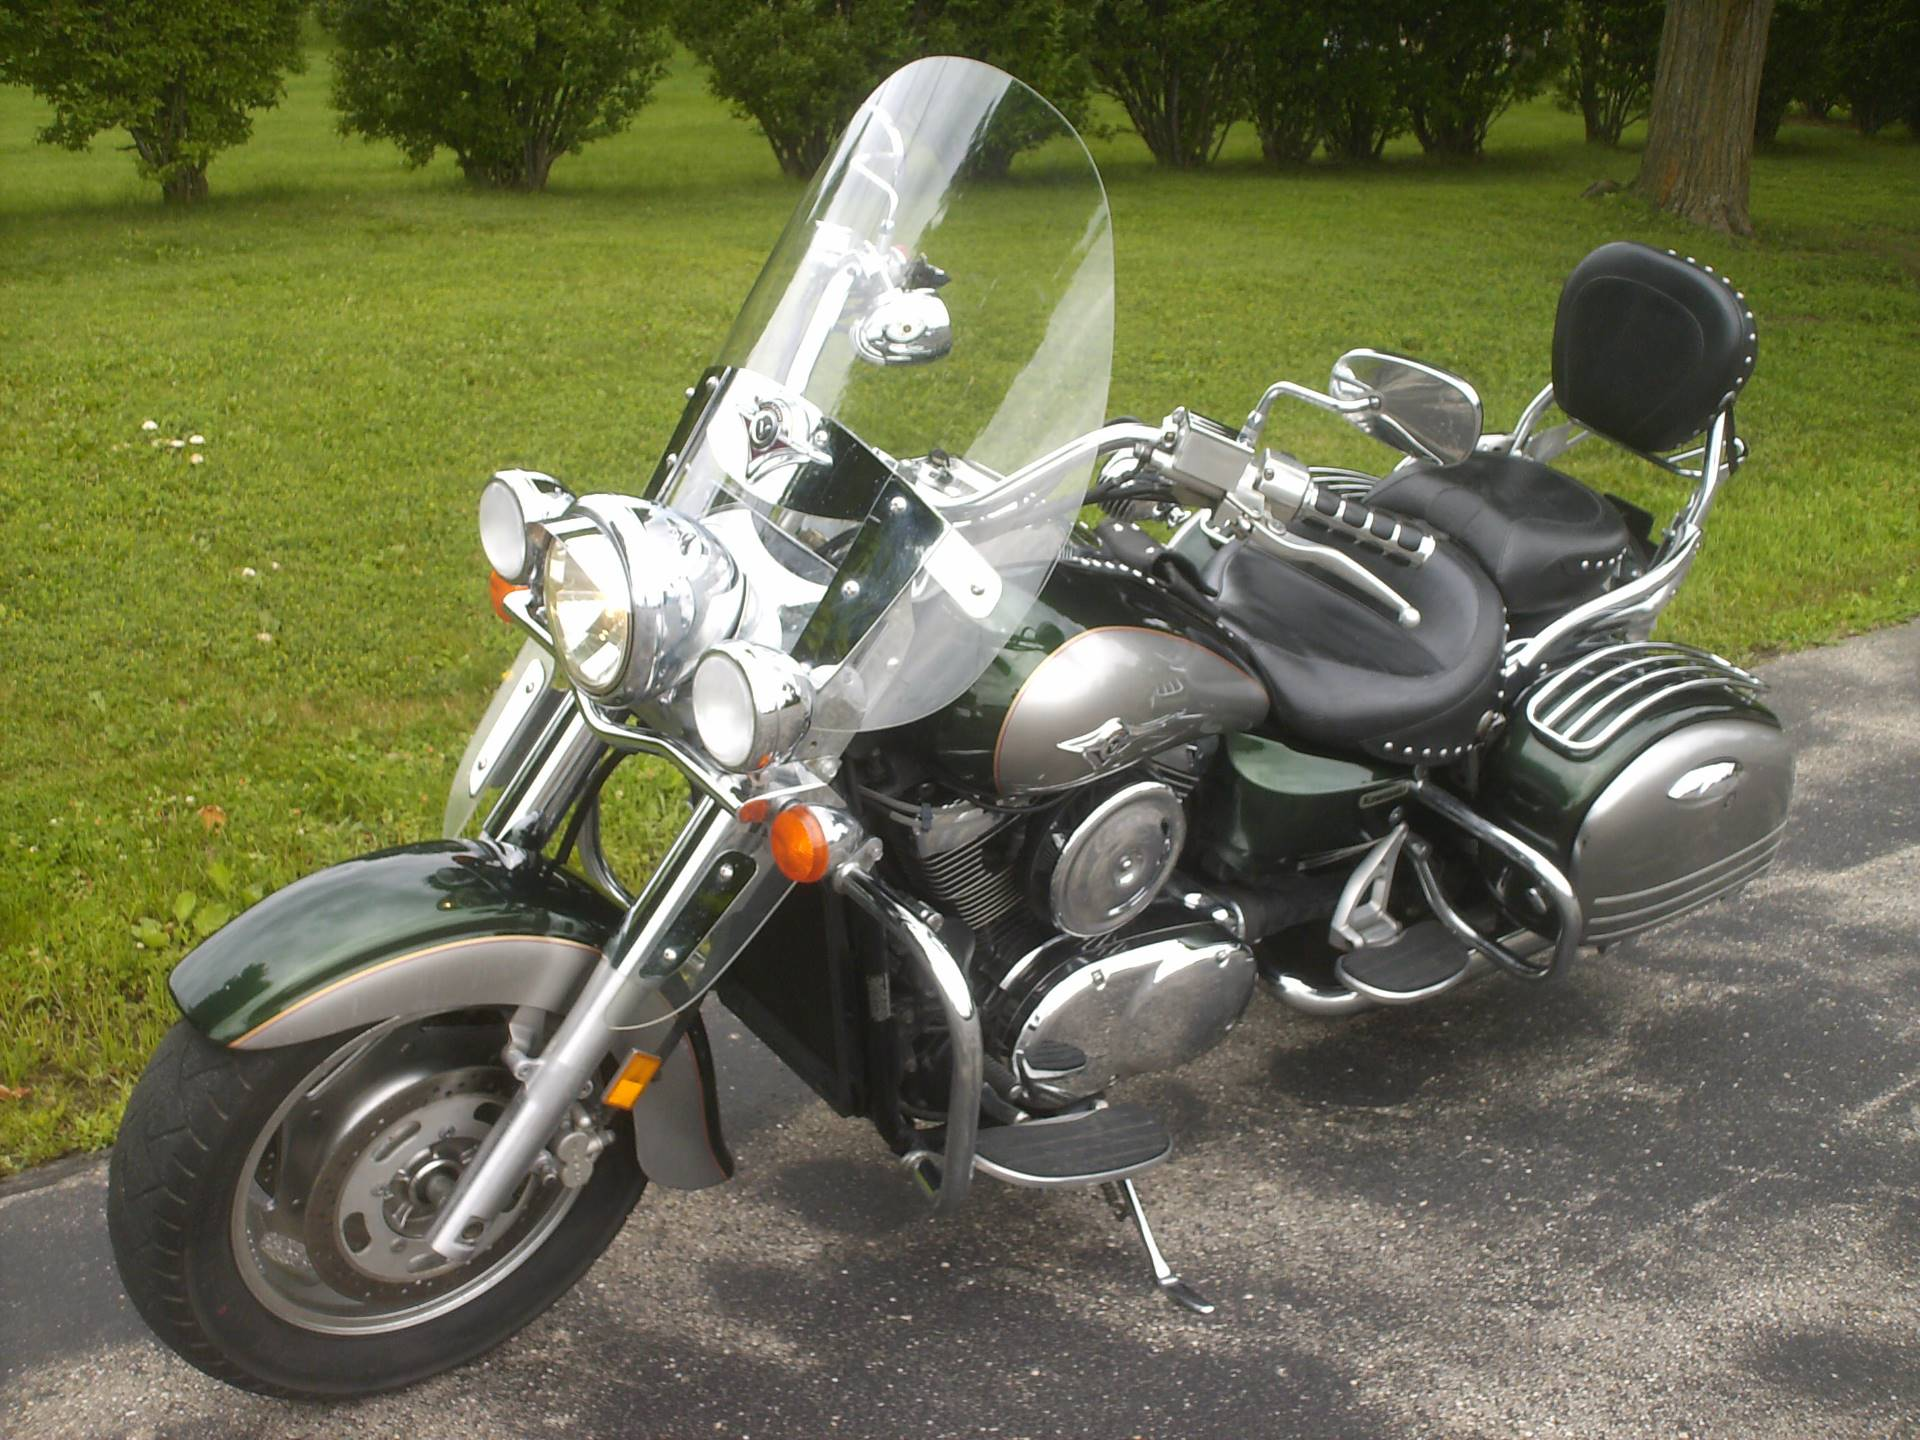 Used 2006 kawasaki vulcan 1600 nomad motorcycles in for Nomad scheduler